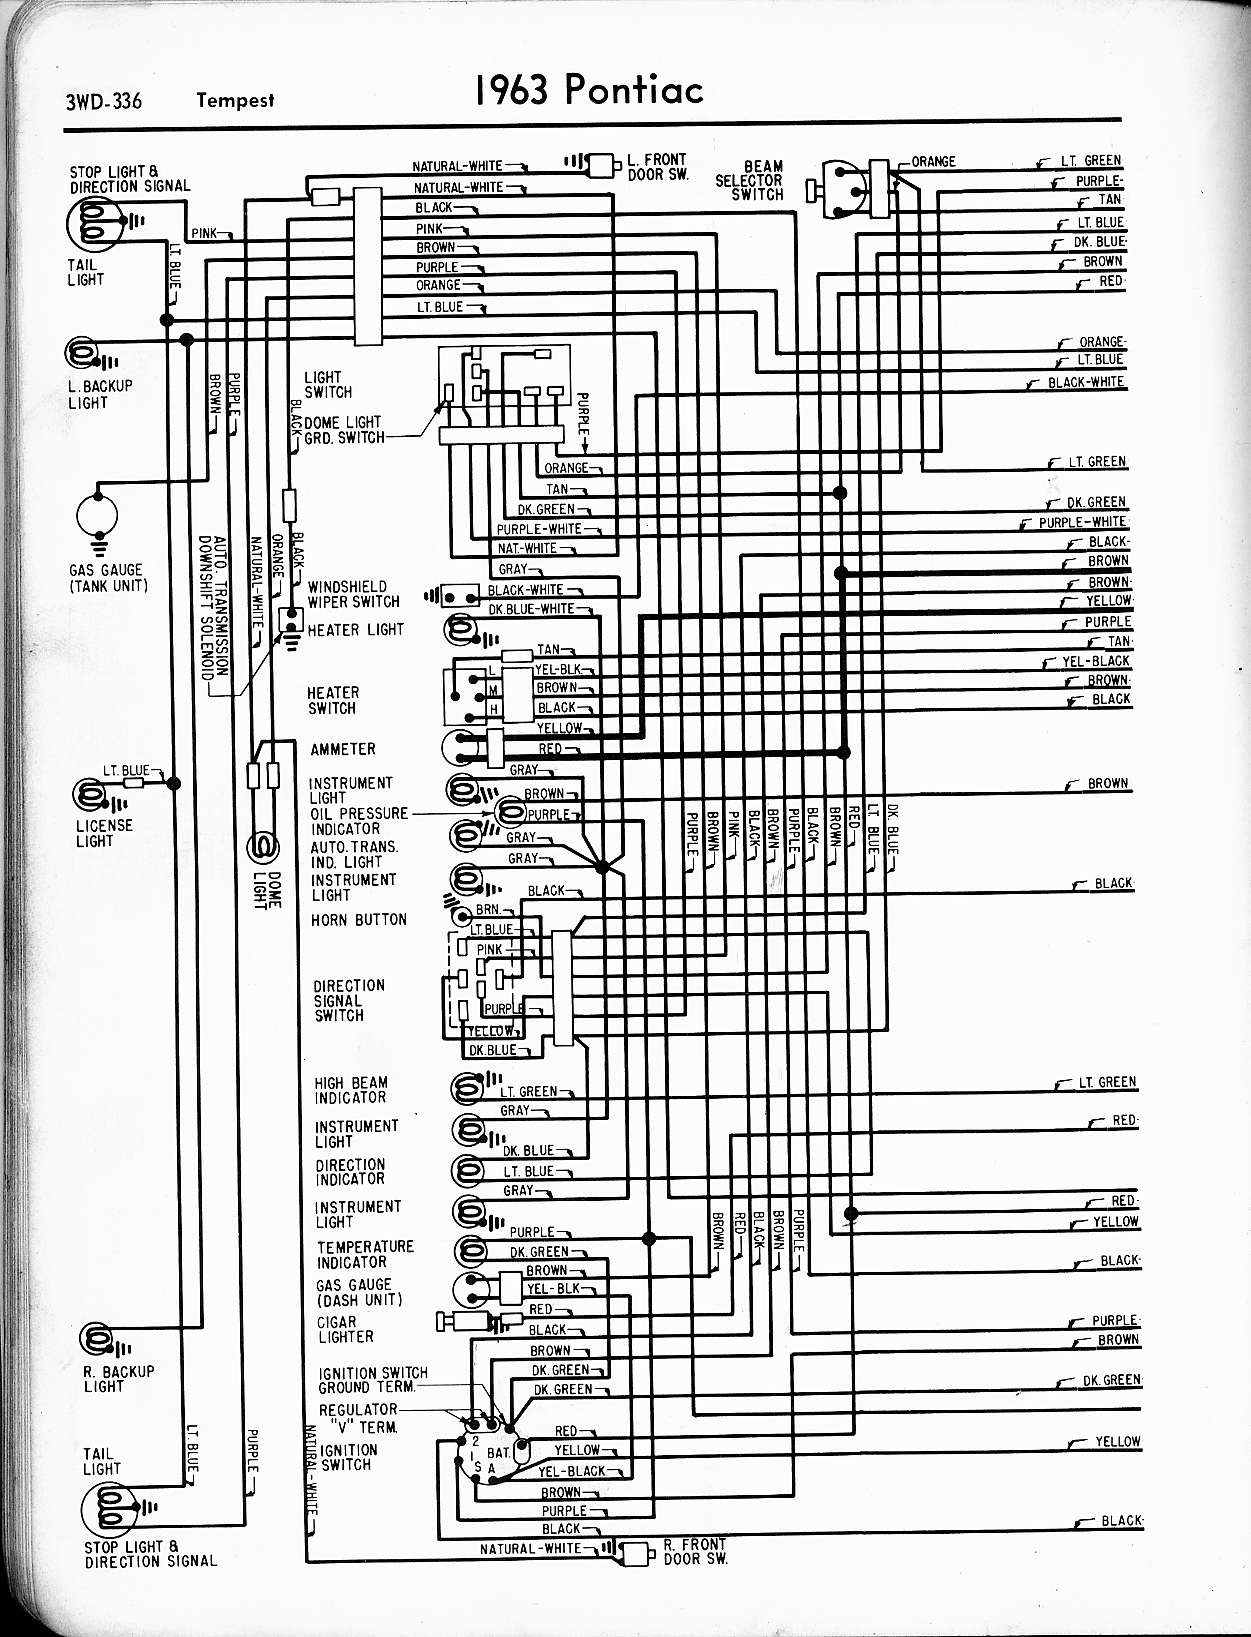 Wiring Diagram For 1963 Pontiac | Wiring Diagram on 1963 pontiac exhaust system, 1963 pontiac interior, 1963 pontiac transaxle, 1963 pontiac quarter panels,